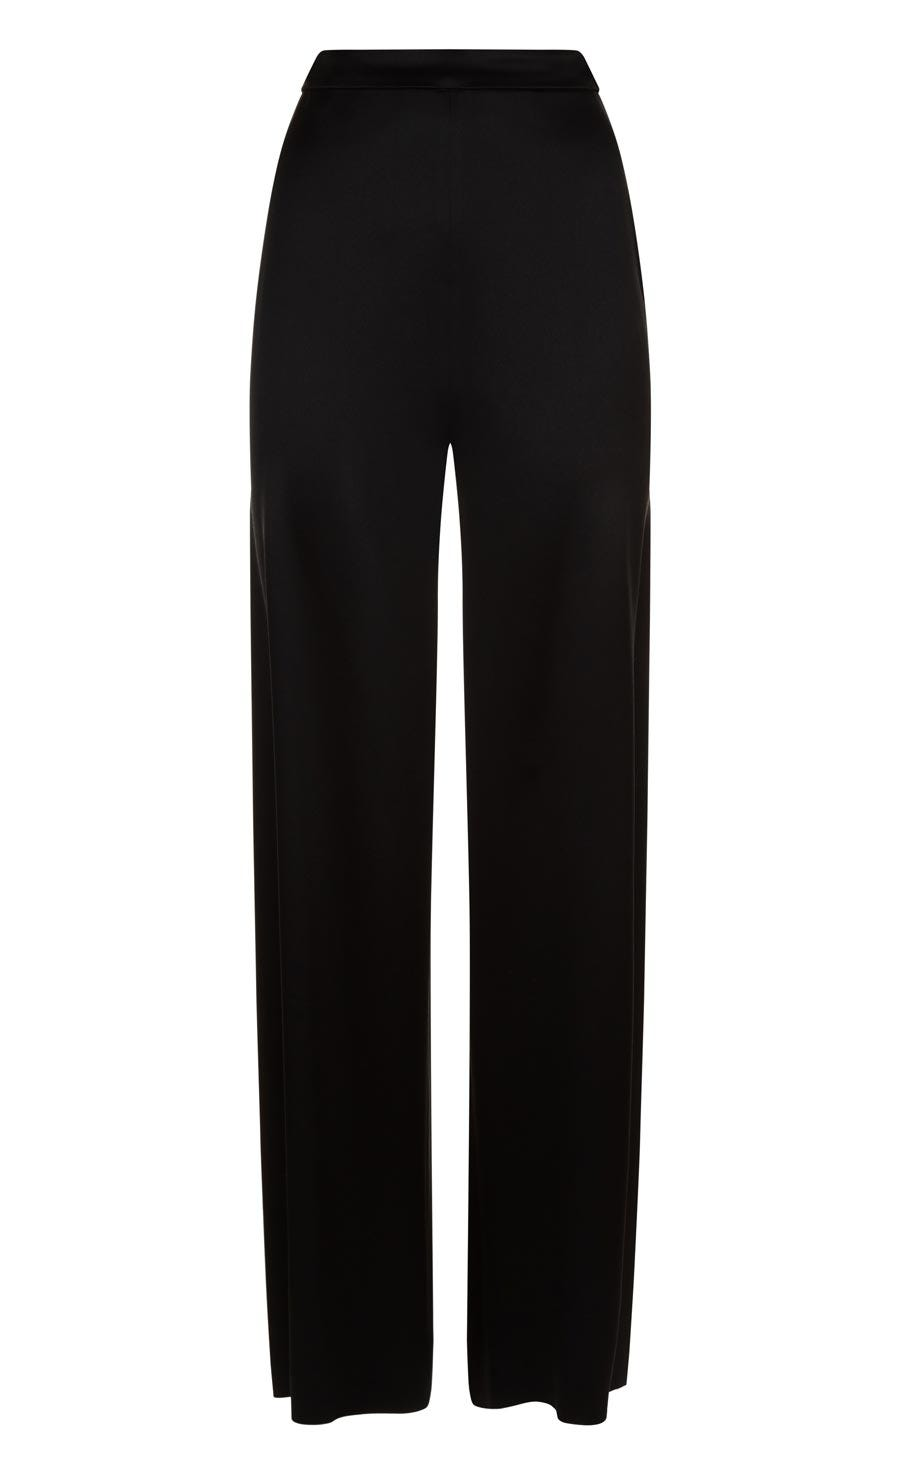 Rising Trousers, Black